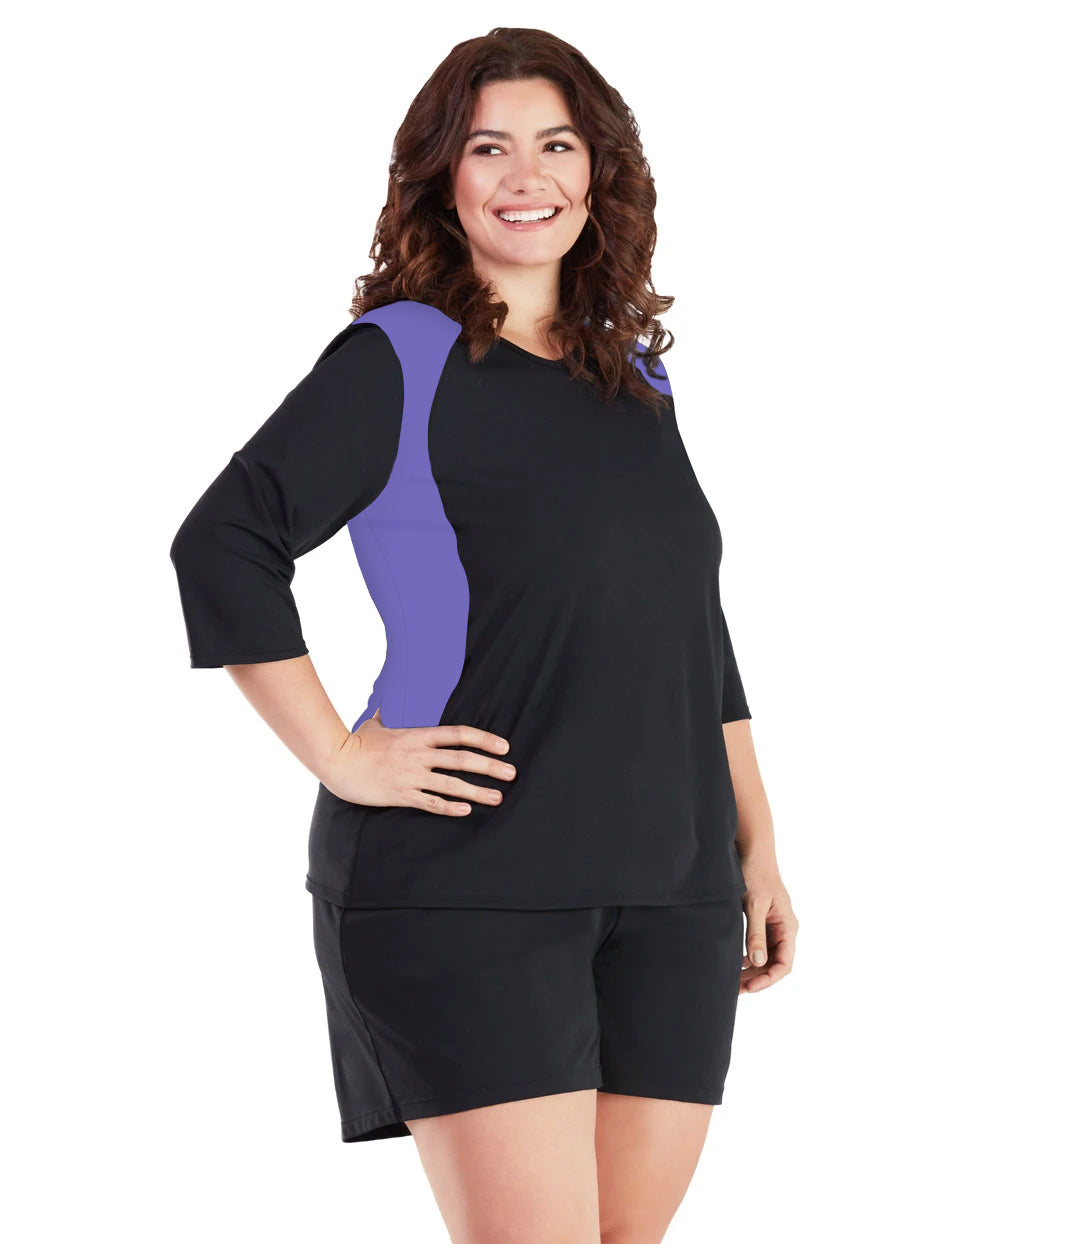 AquaSport Three Quarter Sleeve Rash Guard - Purple and Black-Swim Tops-SFO Apparel-XL-Purple/Black-JunoActive